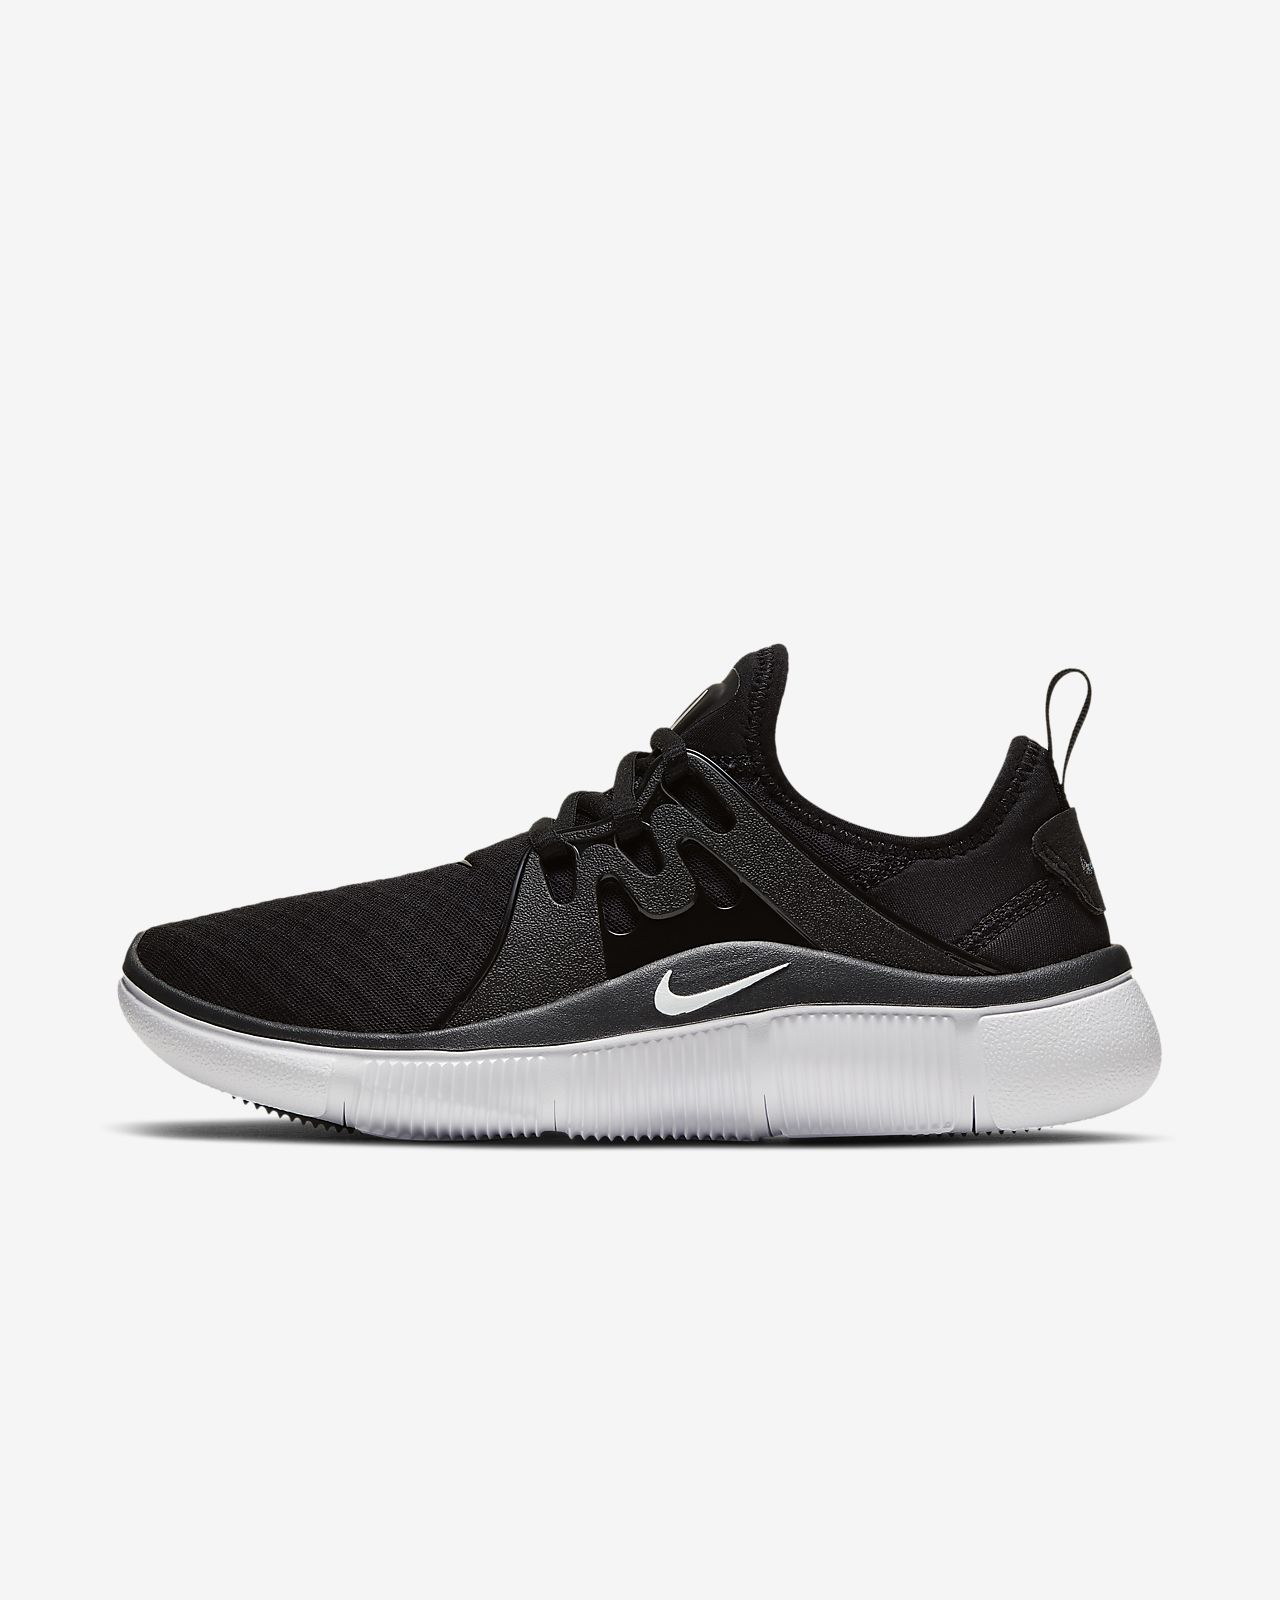 Nike Acalme Women's Shoe